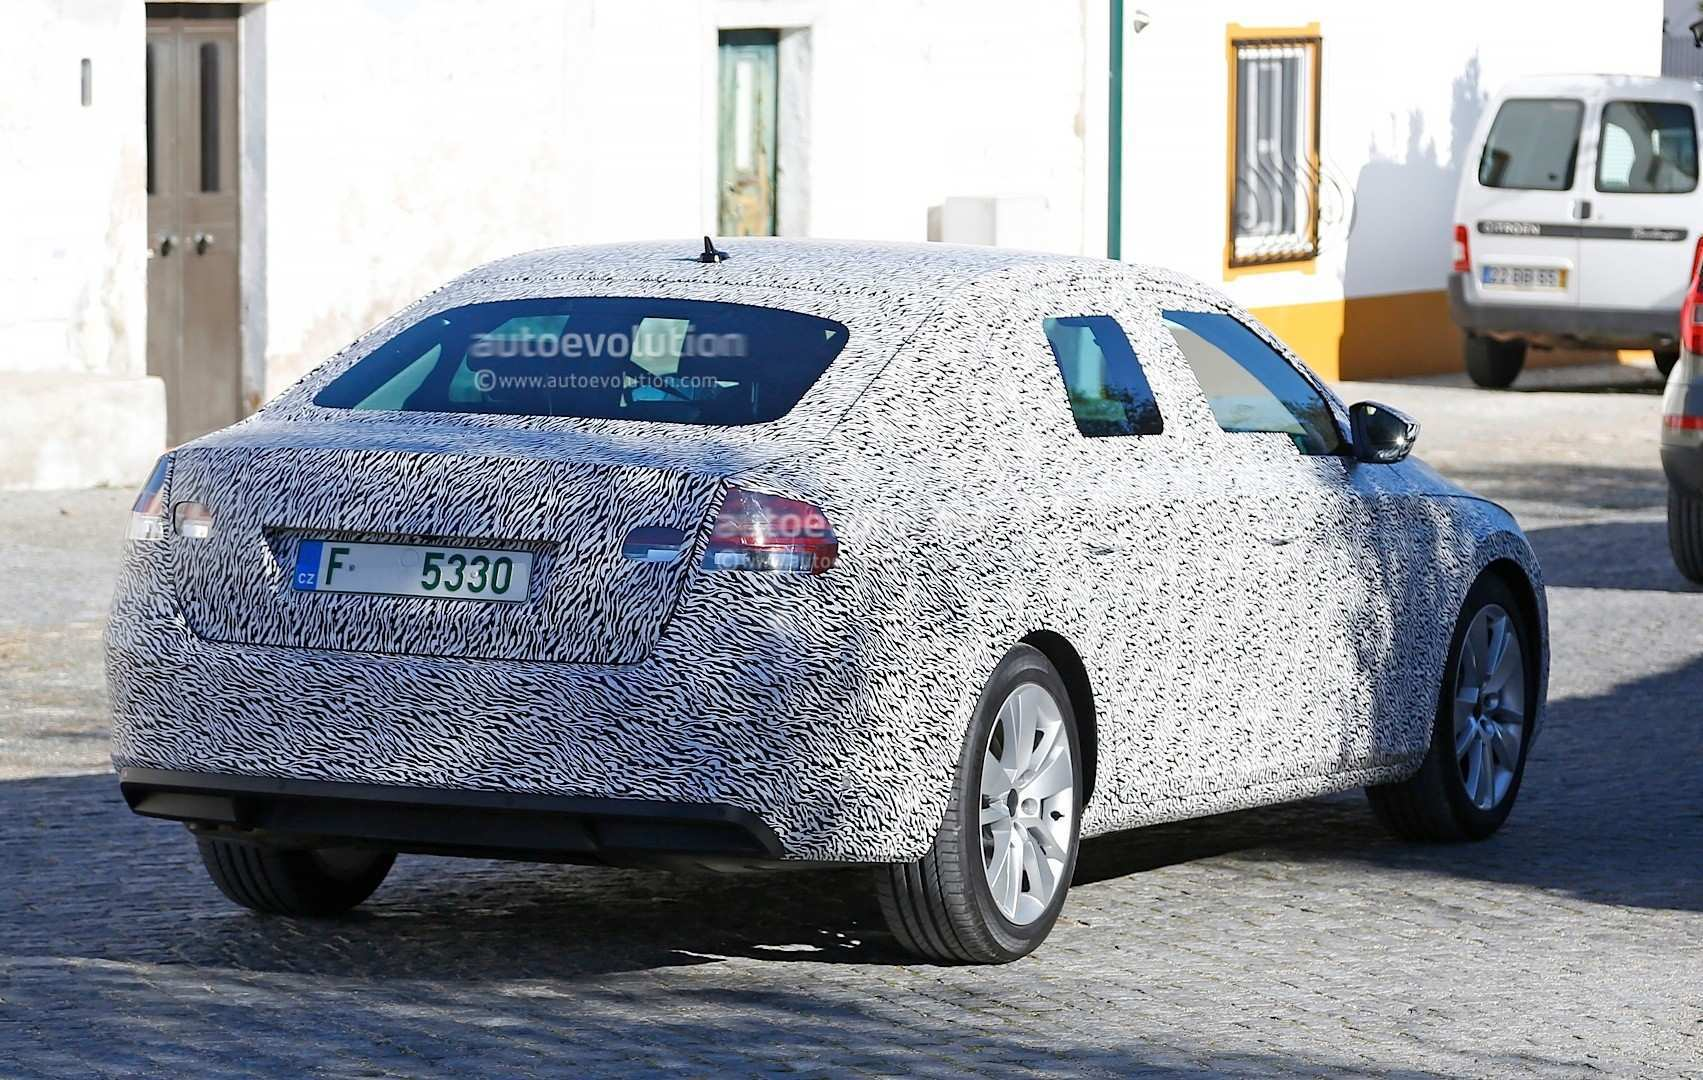 17 New Spy Shots Skoda Superb Concept And Review